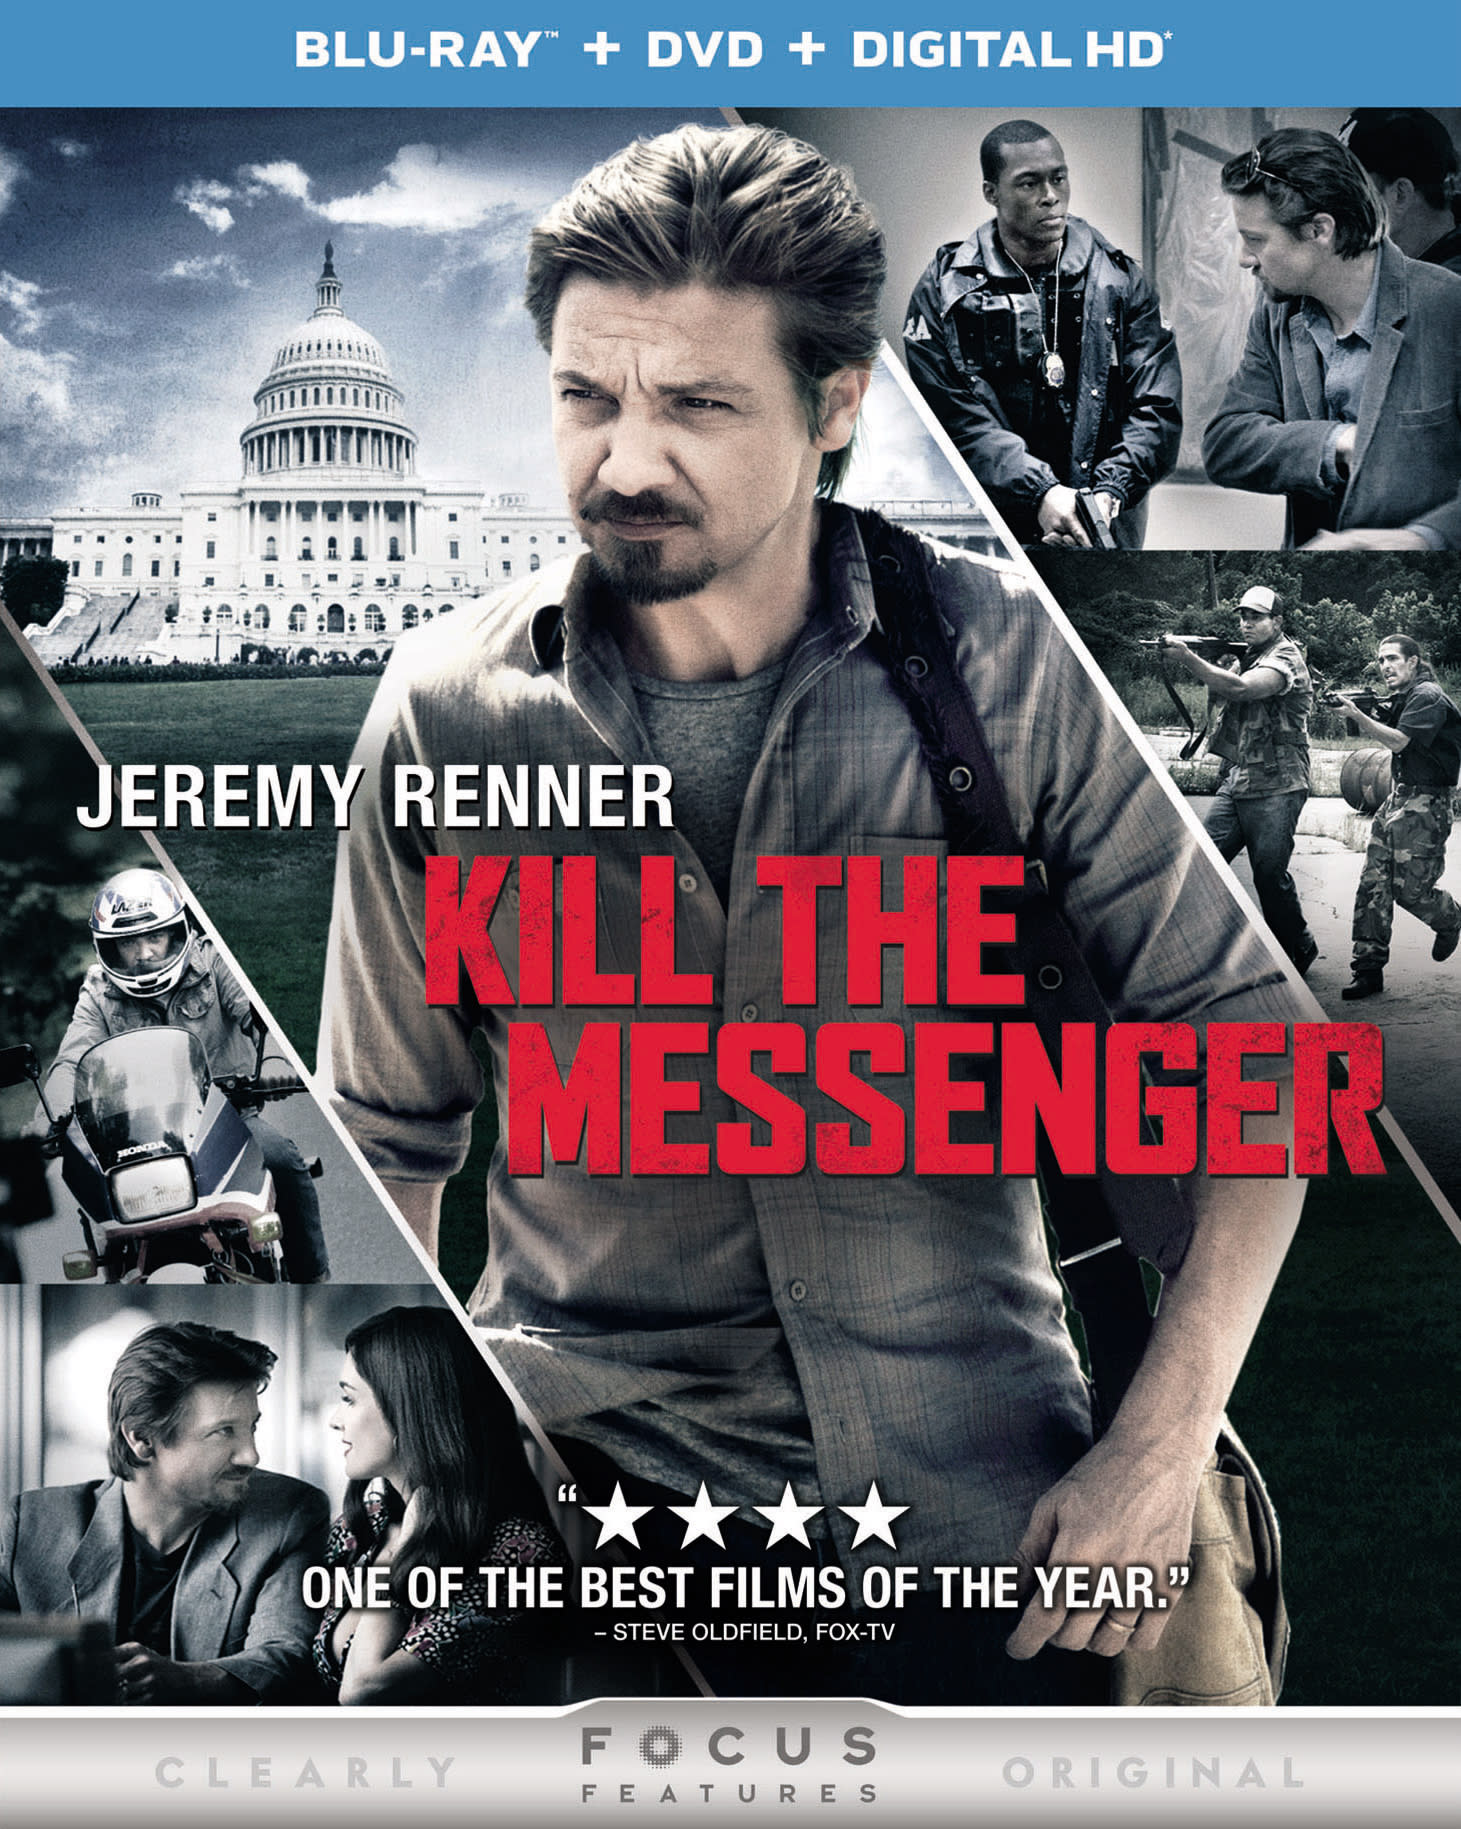 Kill the Messenger (DVD + Digital) [Blu-ray]